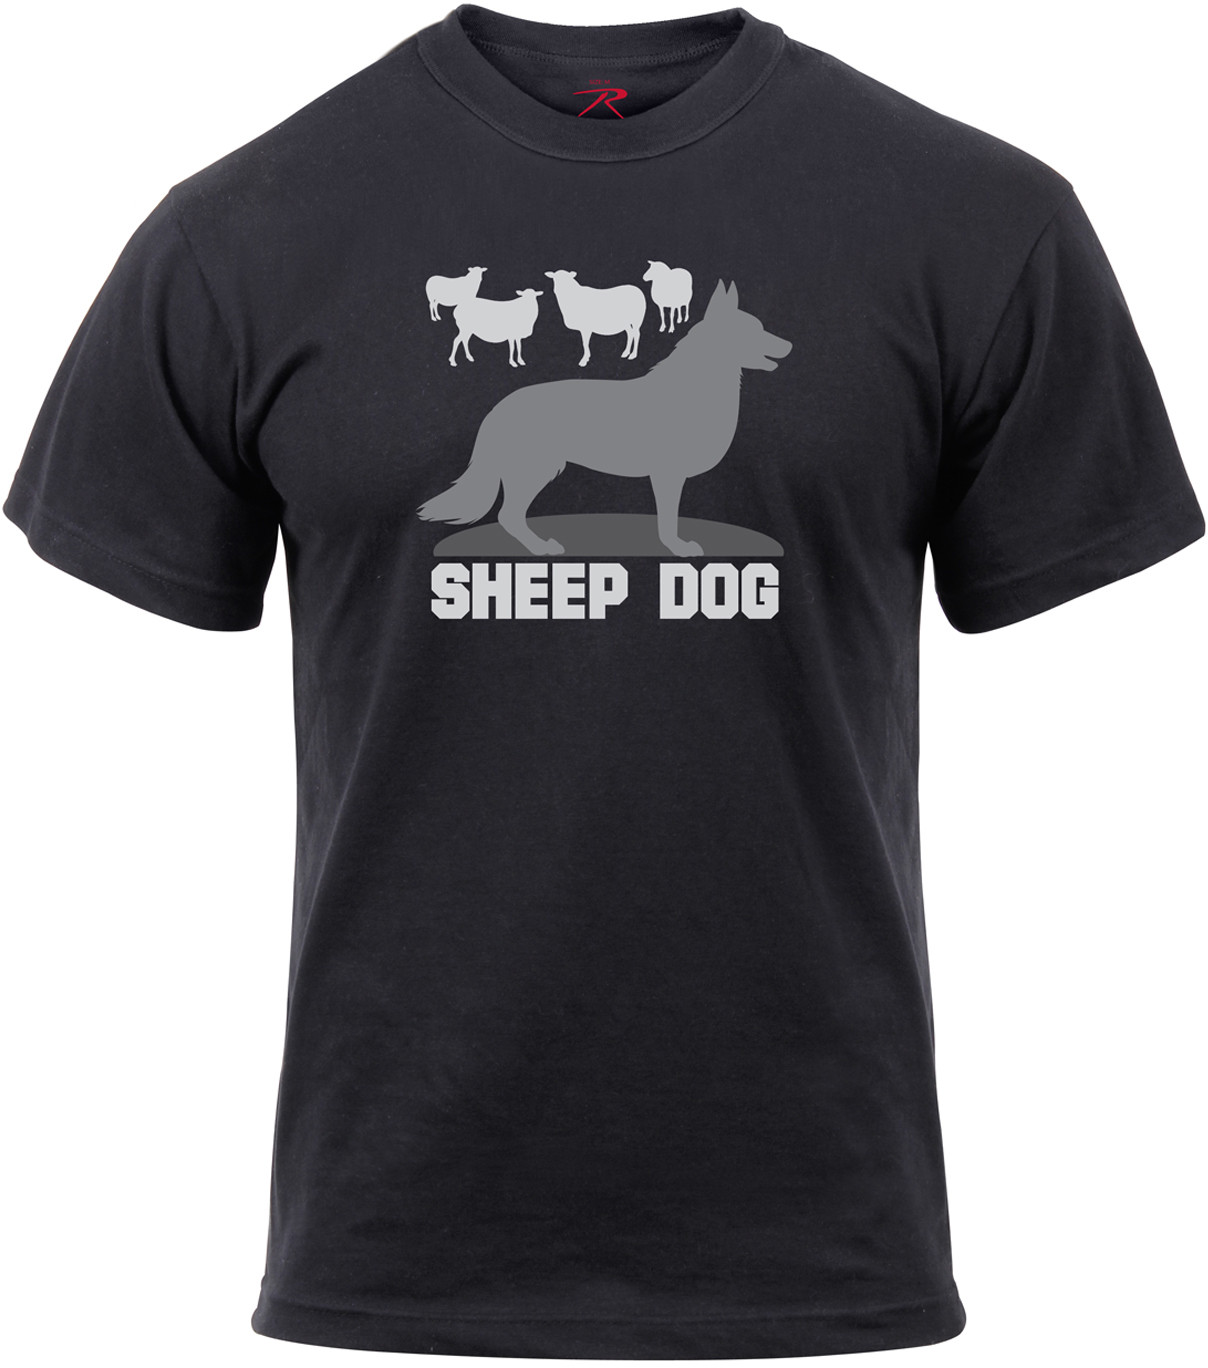 More Views. Black Sheep Dog T-Shirt 6d115eee44e